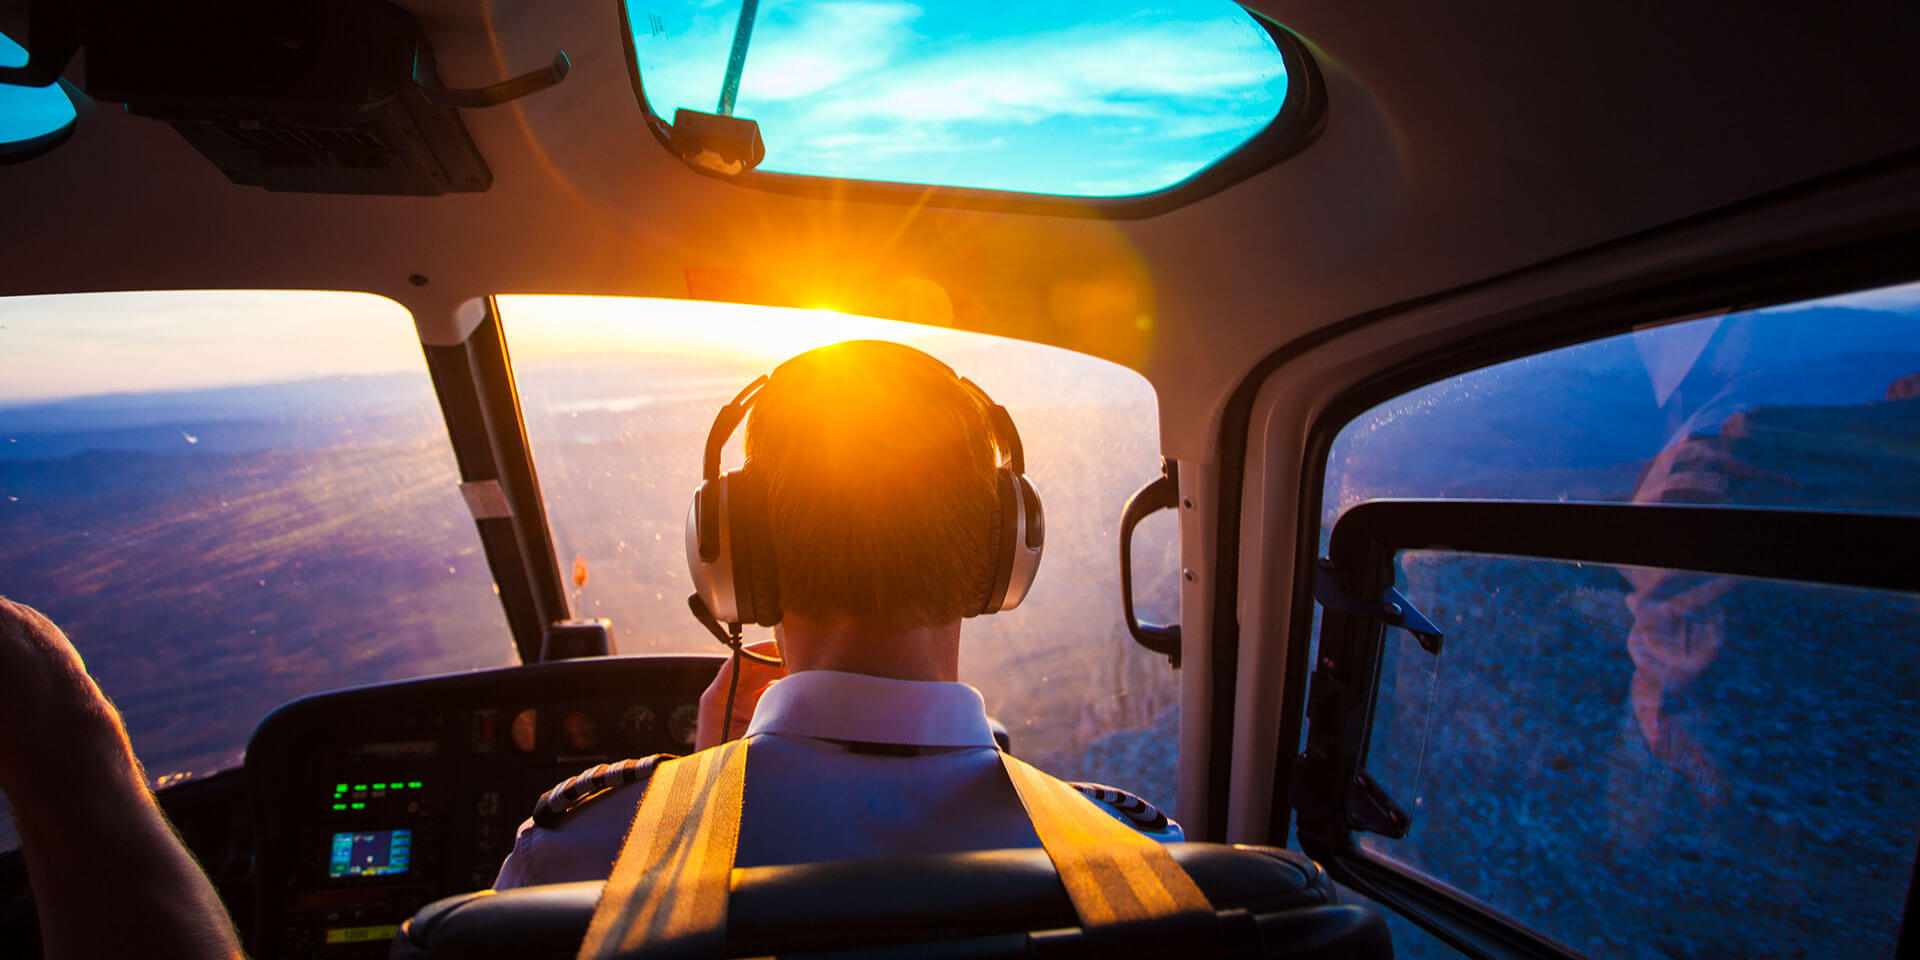 pilot flying a plane looking at the view with a sunset